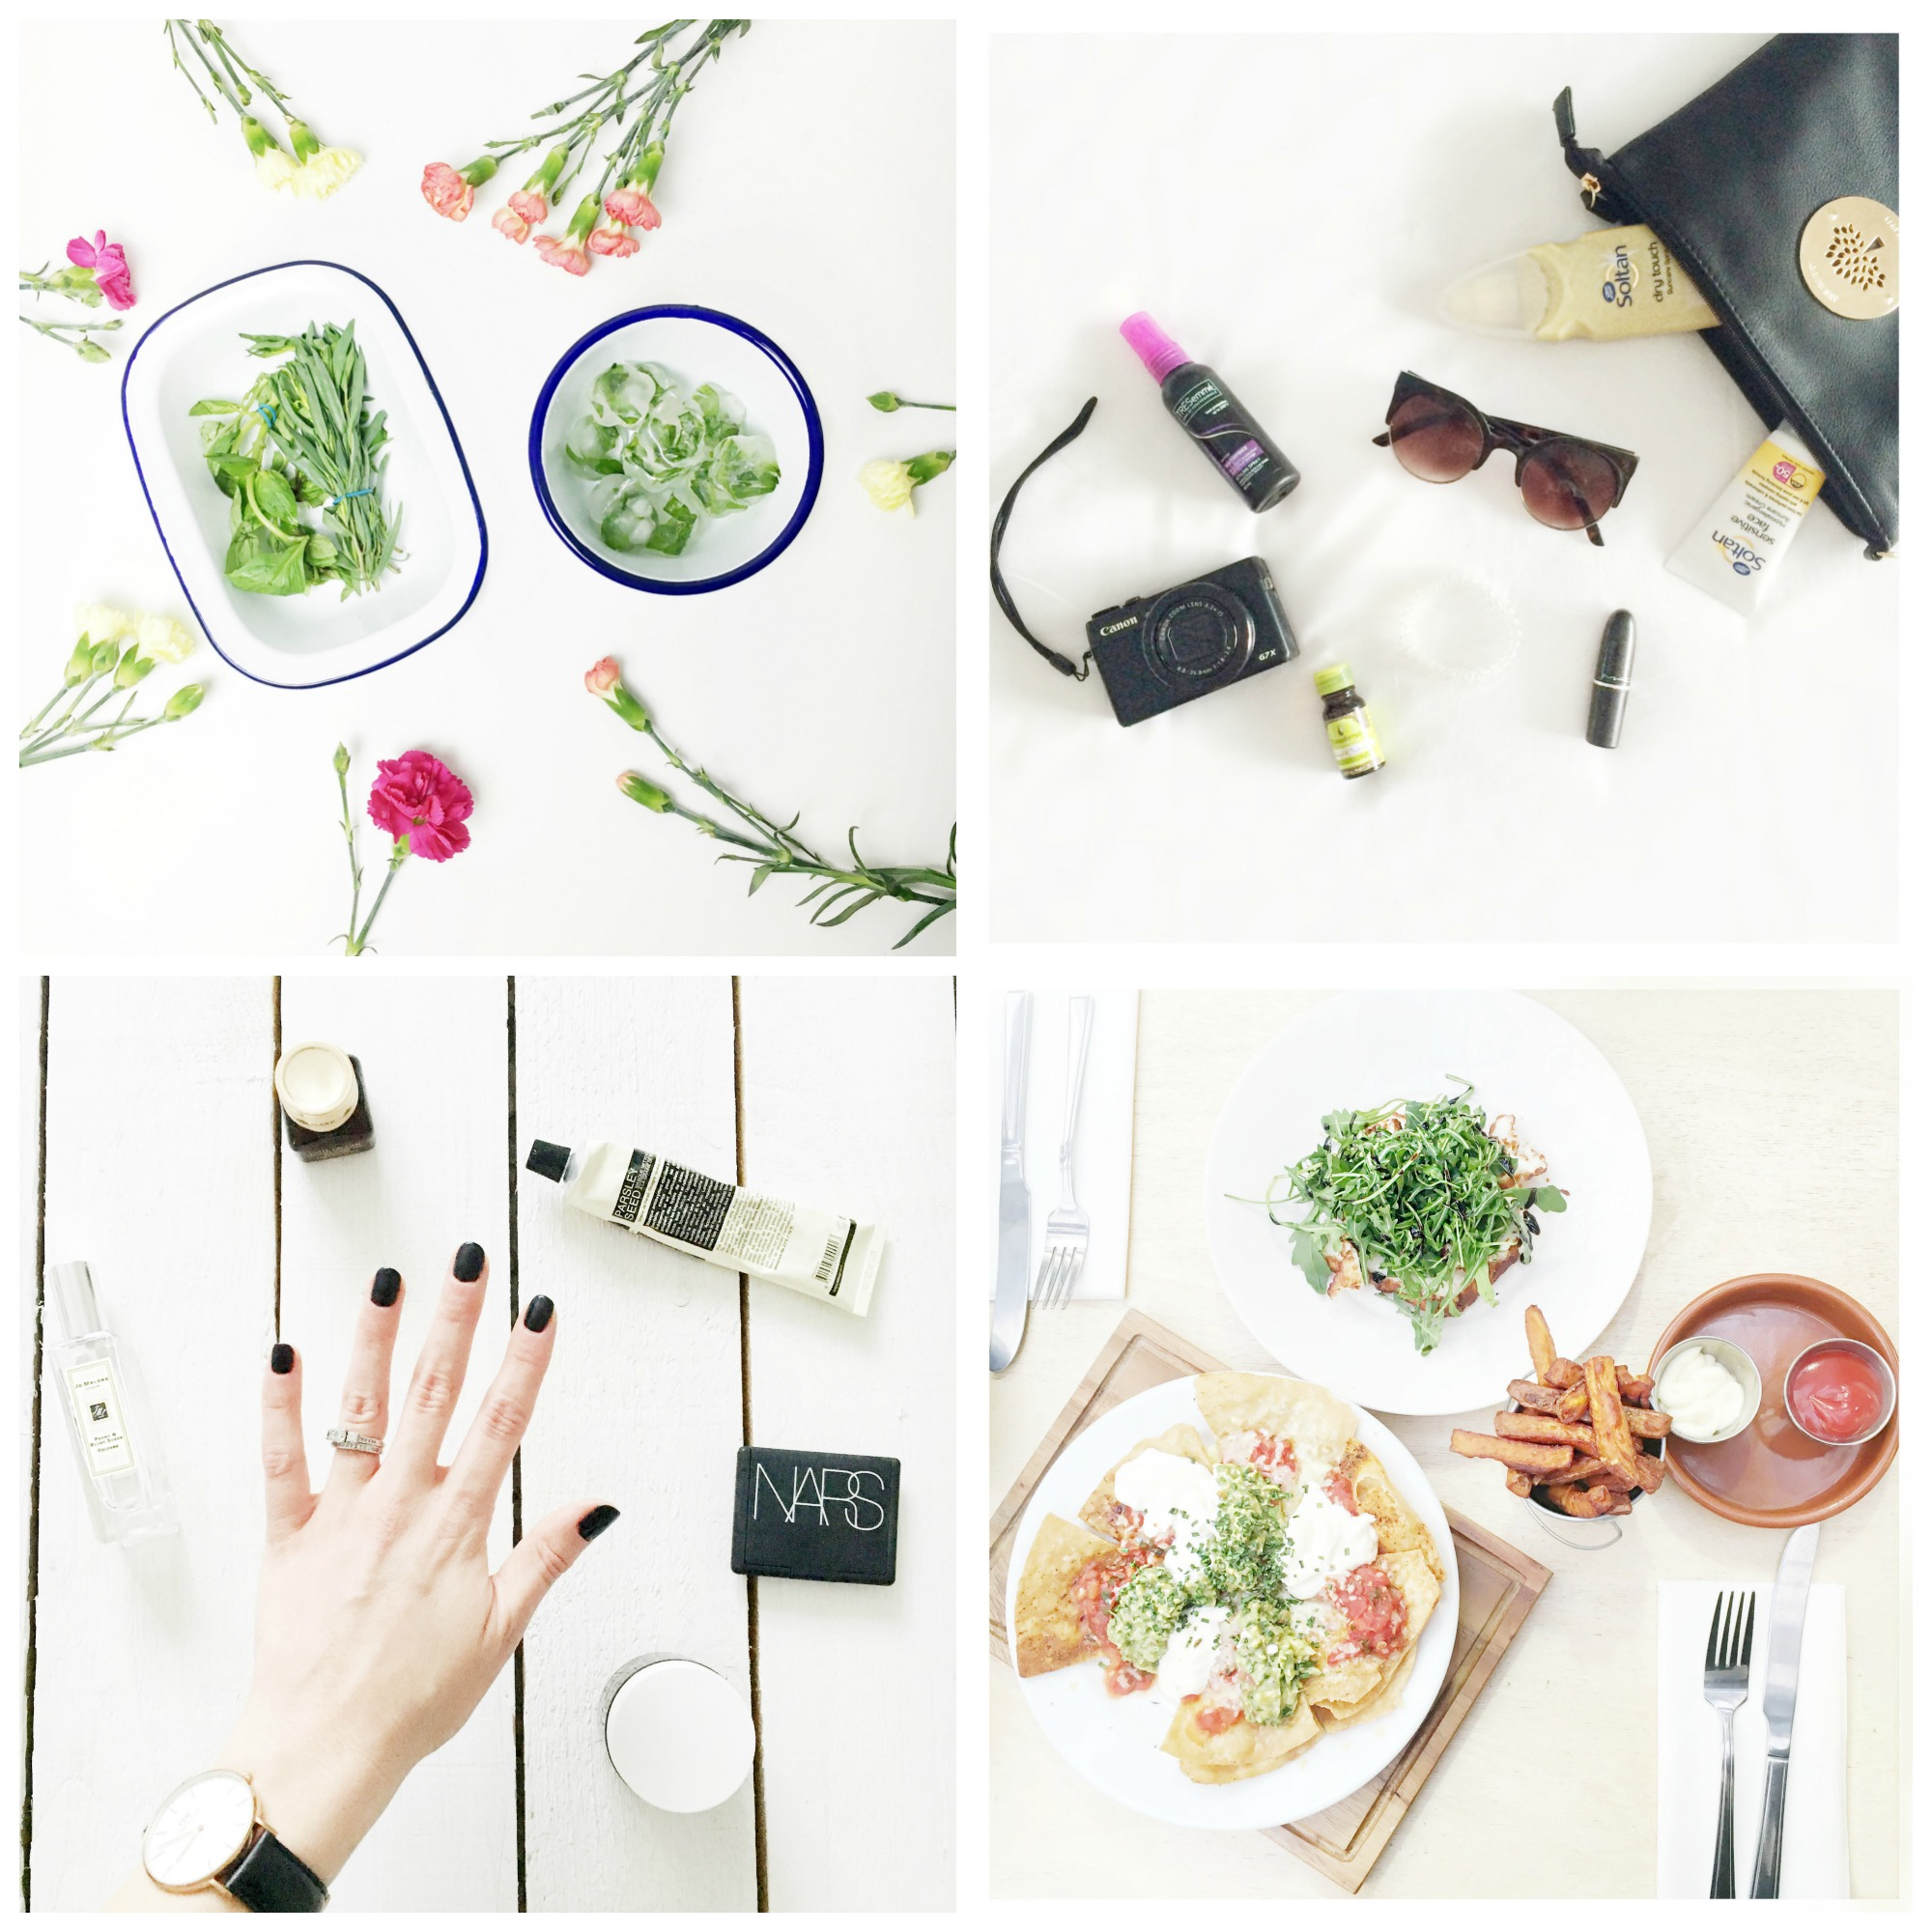 Instagram How To Take The Perfect Flatlay Photo